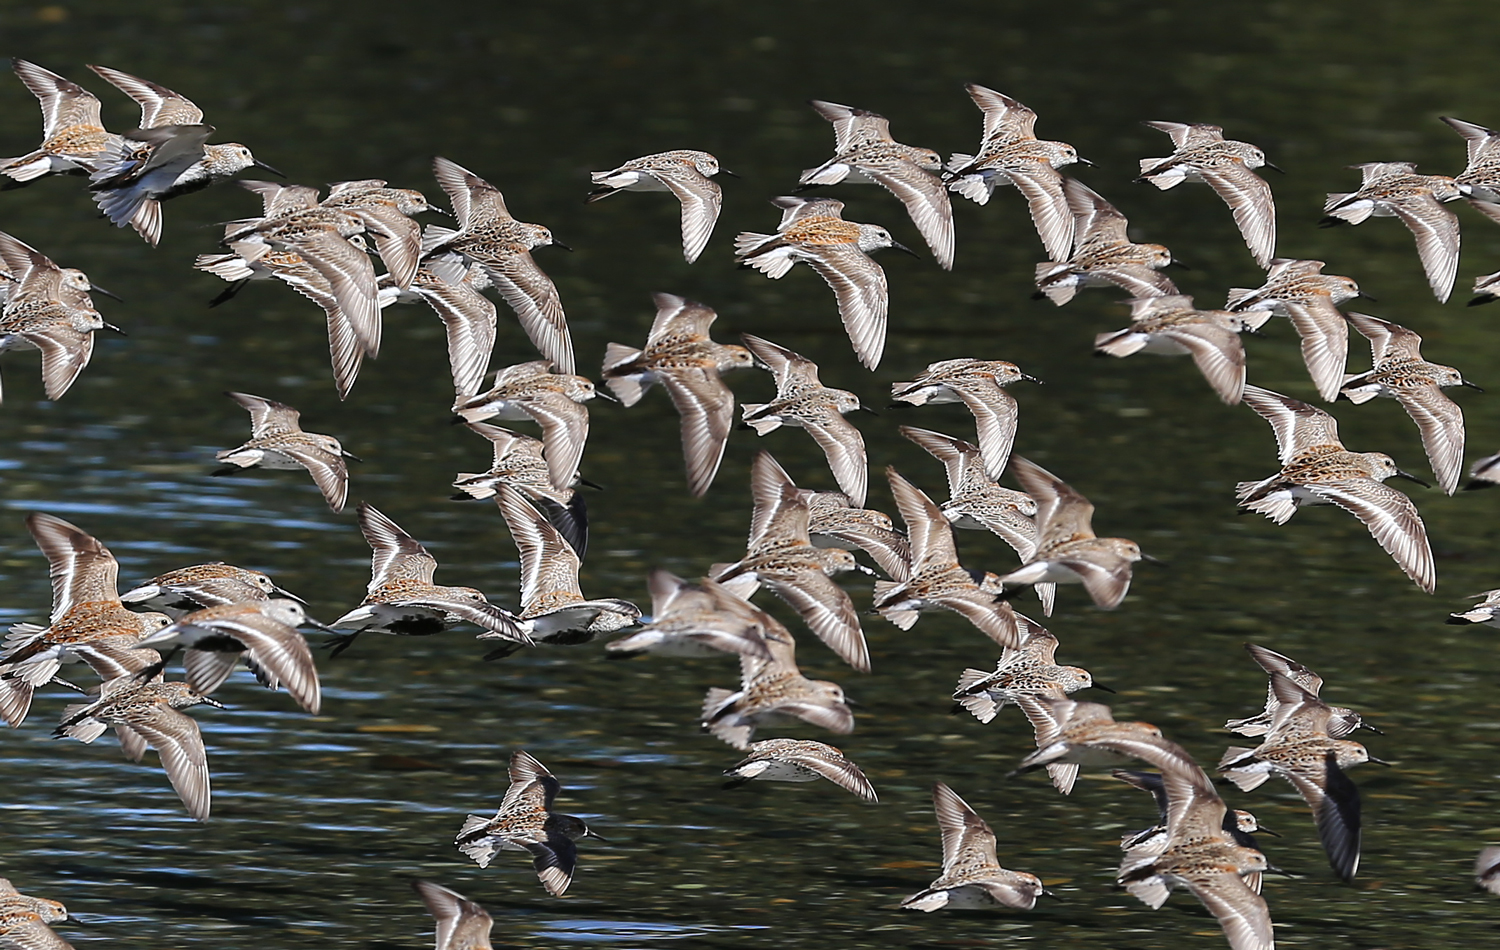 It is a joy to watch sandpipers fly